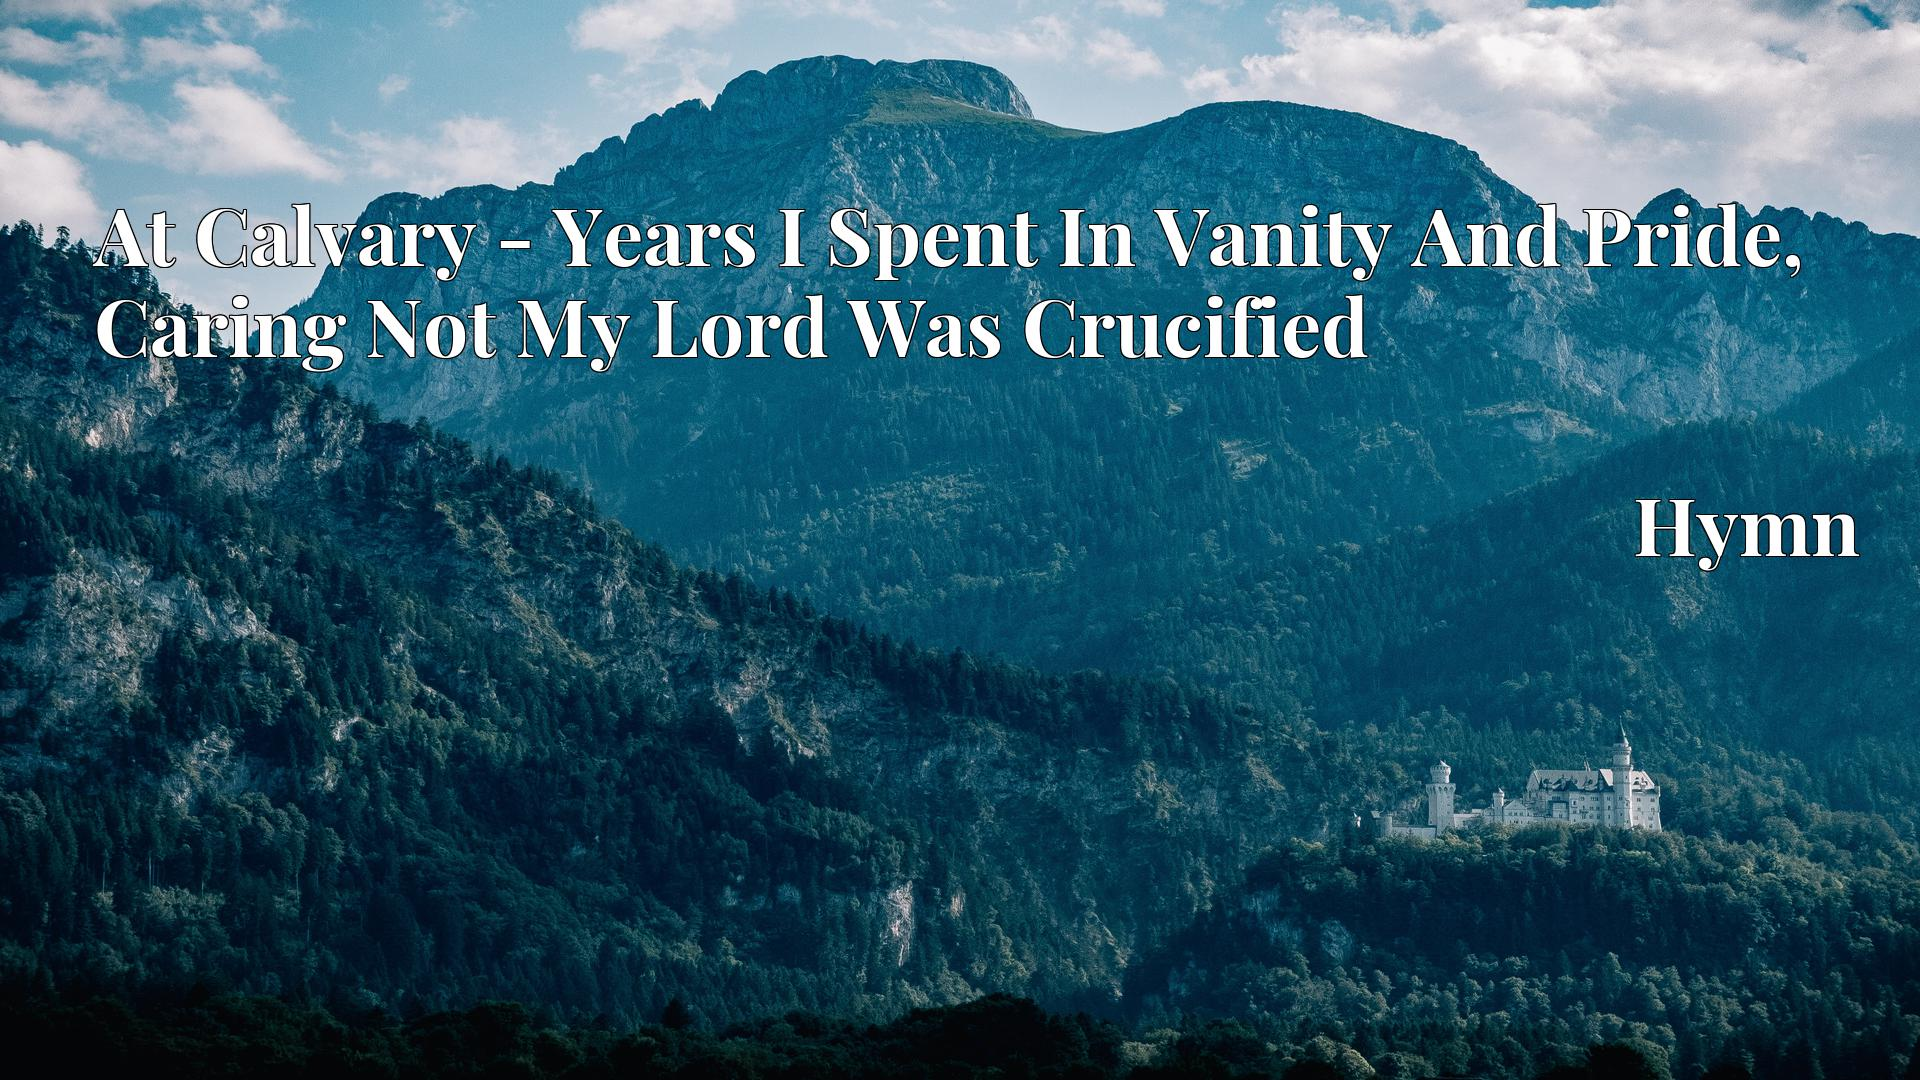 At Calvary - Years I Spent In Vanity And Pride, Caring Not My Lord Was Crucified - Hymn